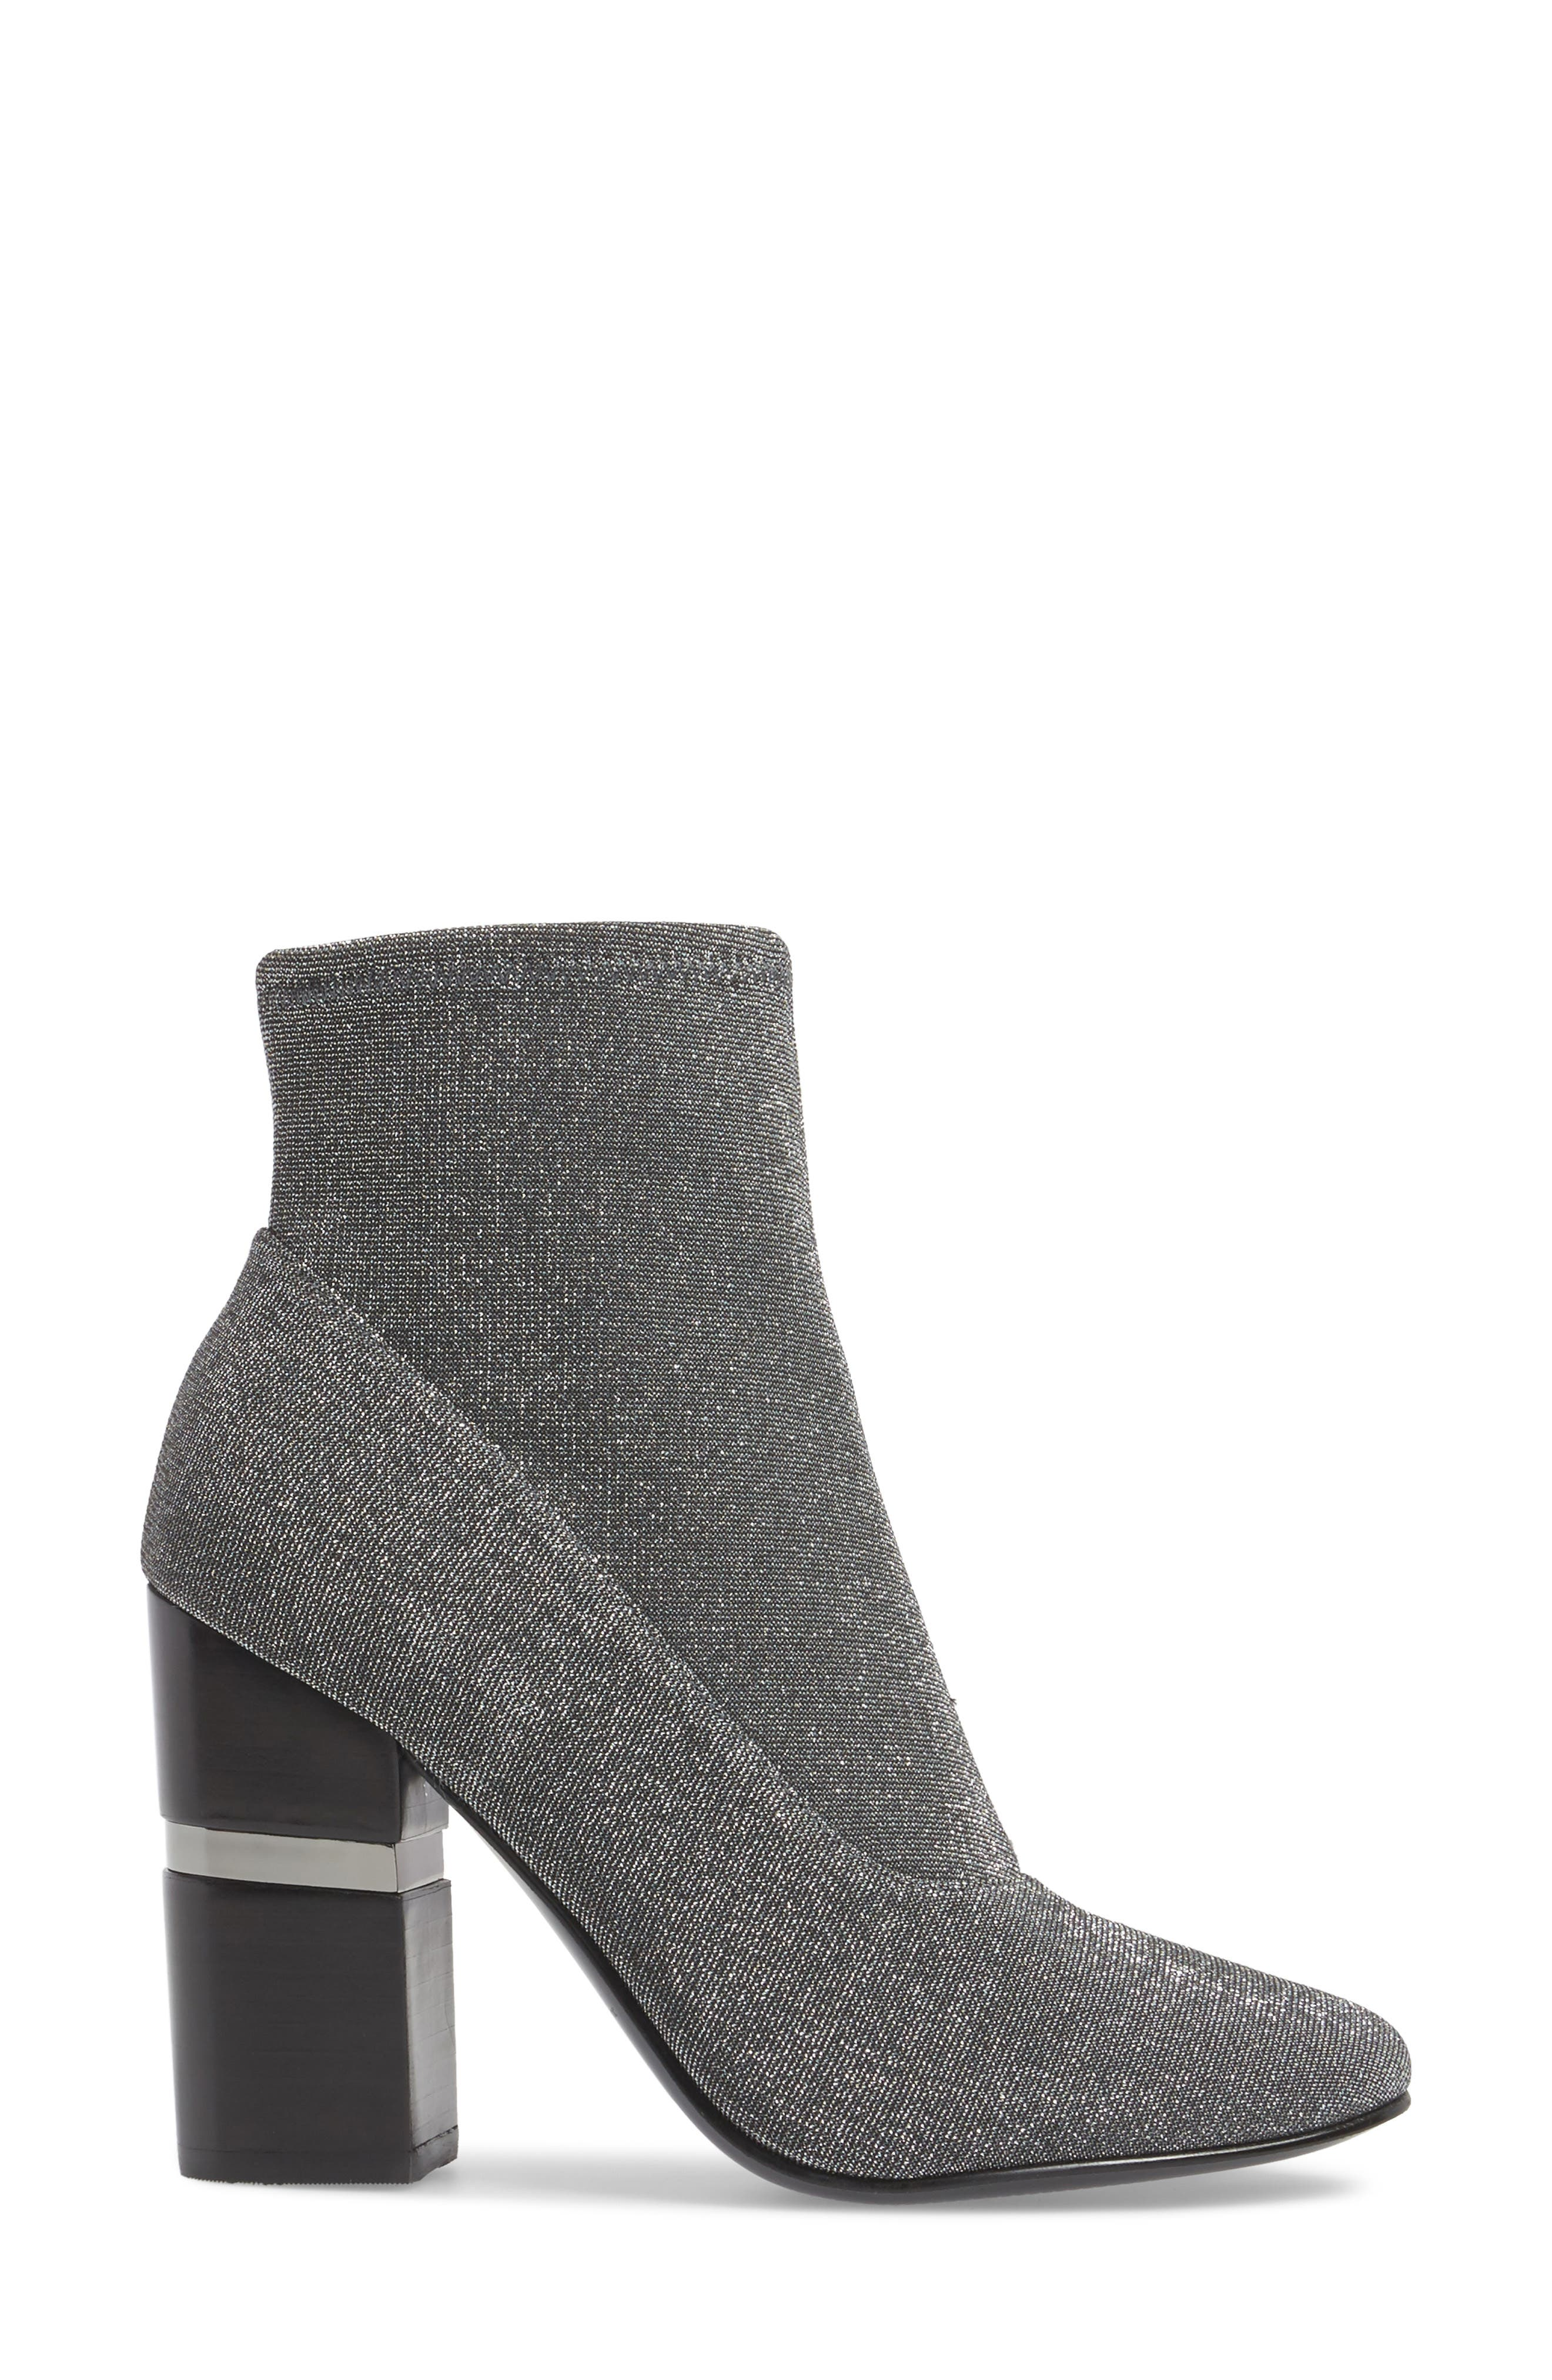 Padda Embellished Stretch Bootie,                             Alternate thumbnail 3, color,                             Silver Glitter Fabric